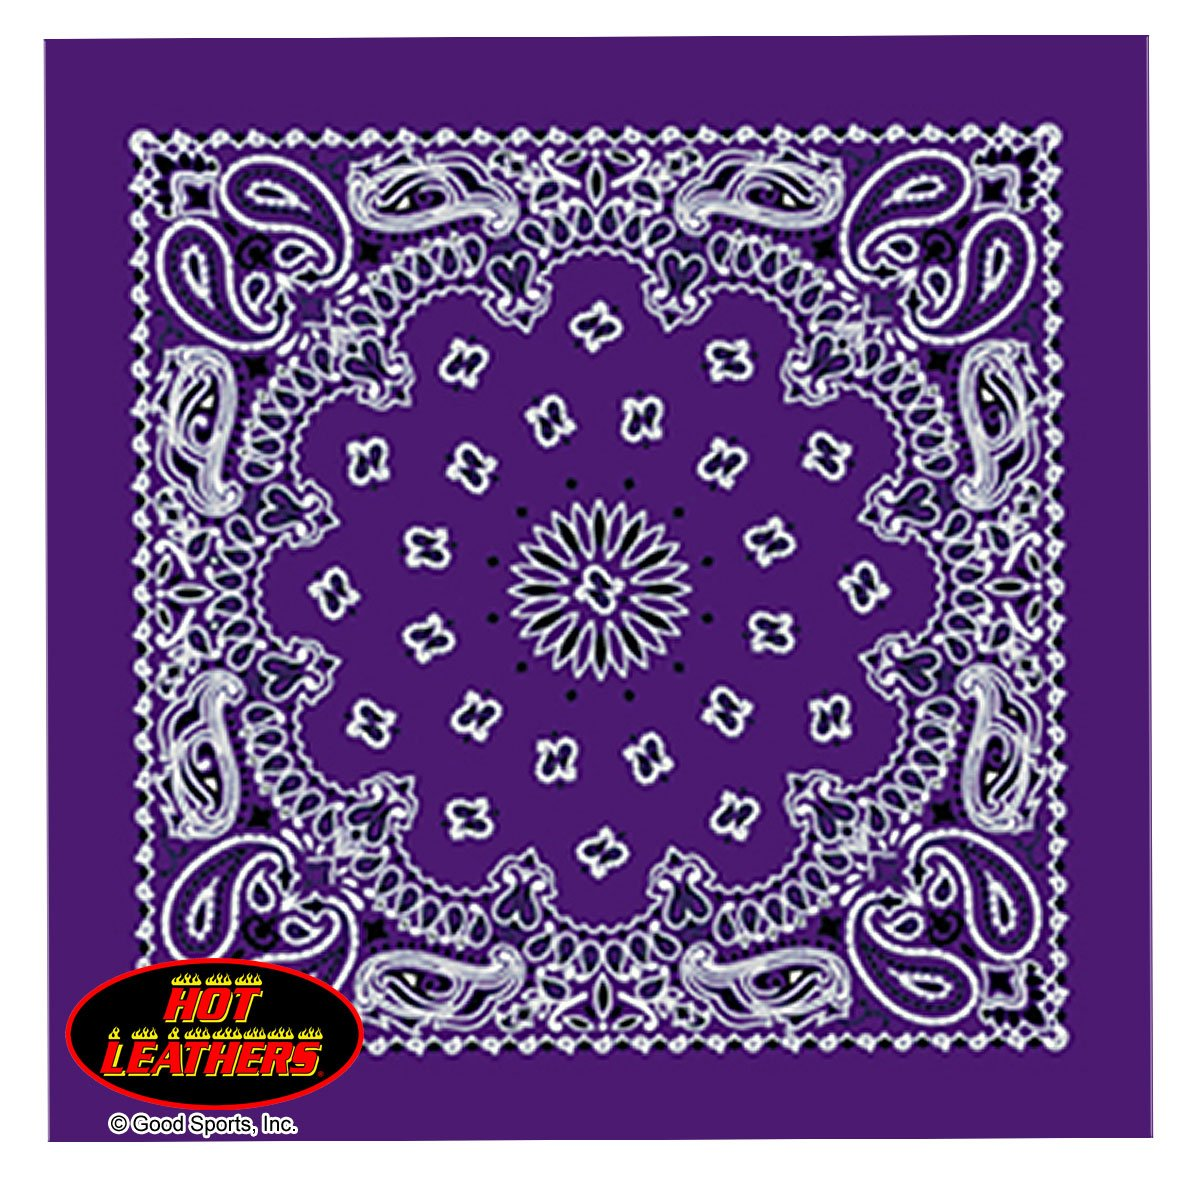 Bikers Bandanas Collection Original Design, 21 x 21 - BANDANA PURPLE PAISLEY DESIGN